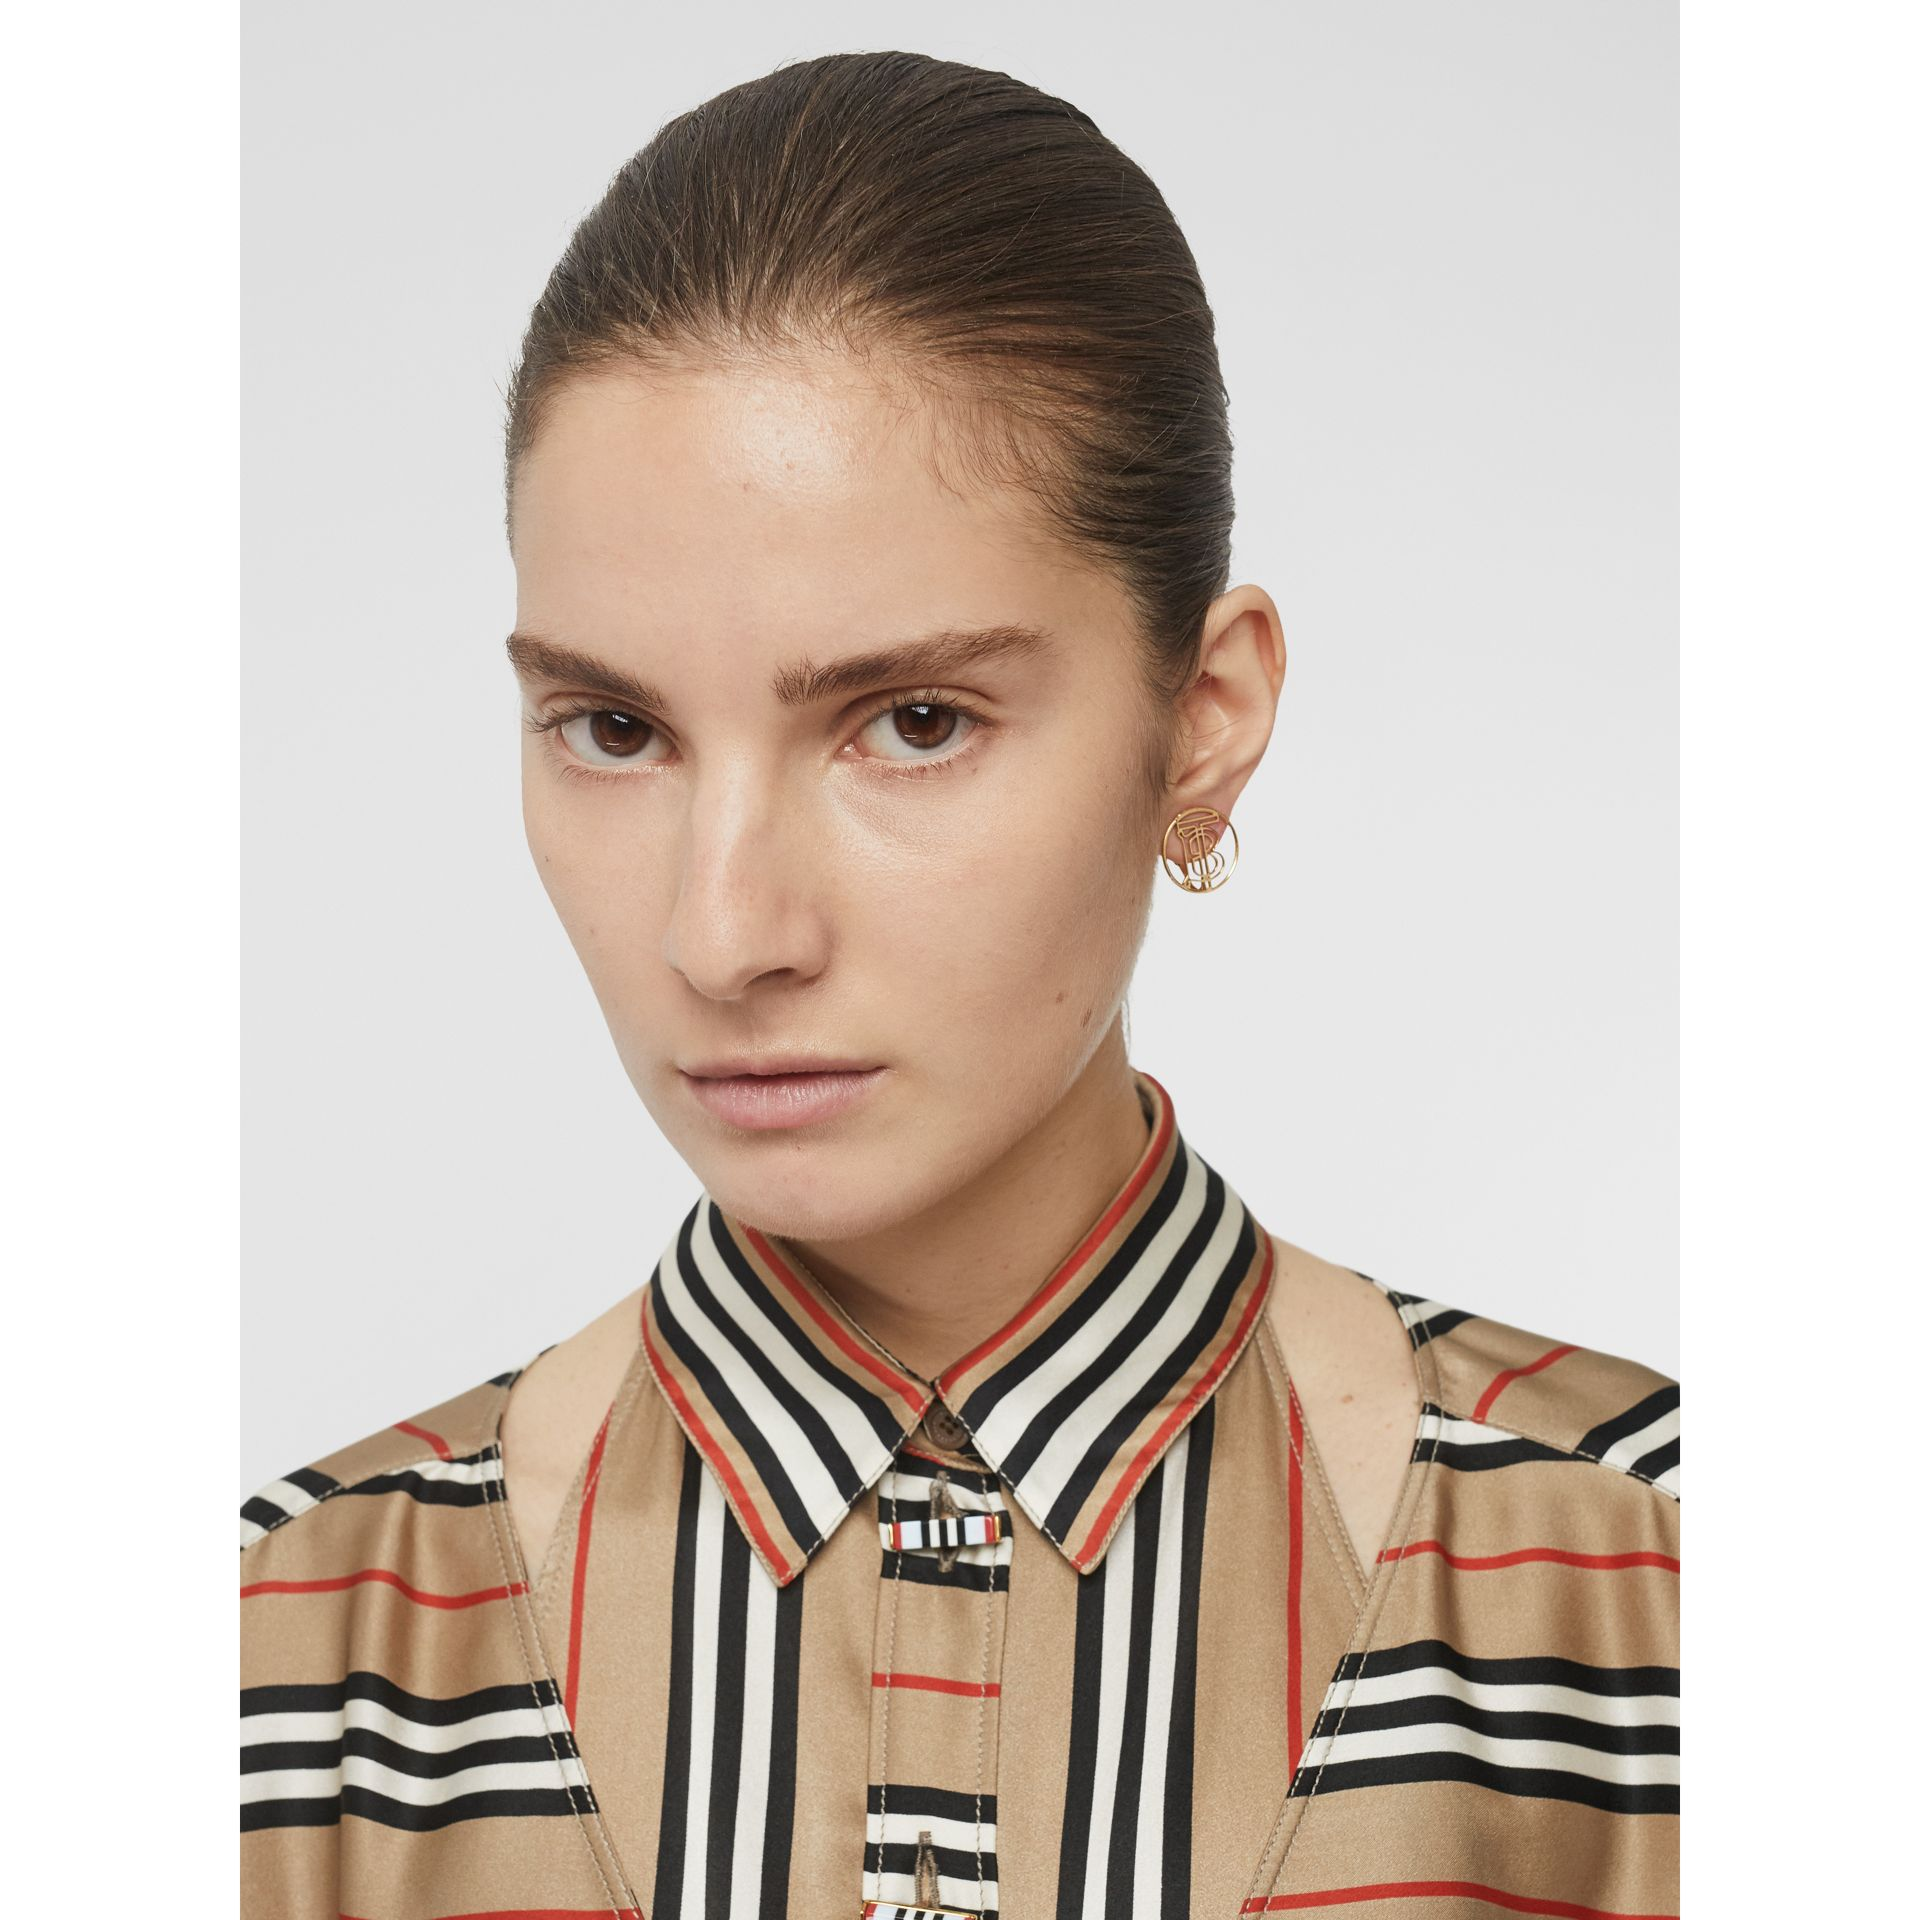 Cut-out Detail Icon Stripe Silk Shirt in Archive Beige - Women | Burberry United Kingdom - gallery image 5